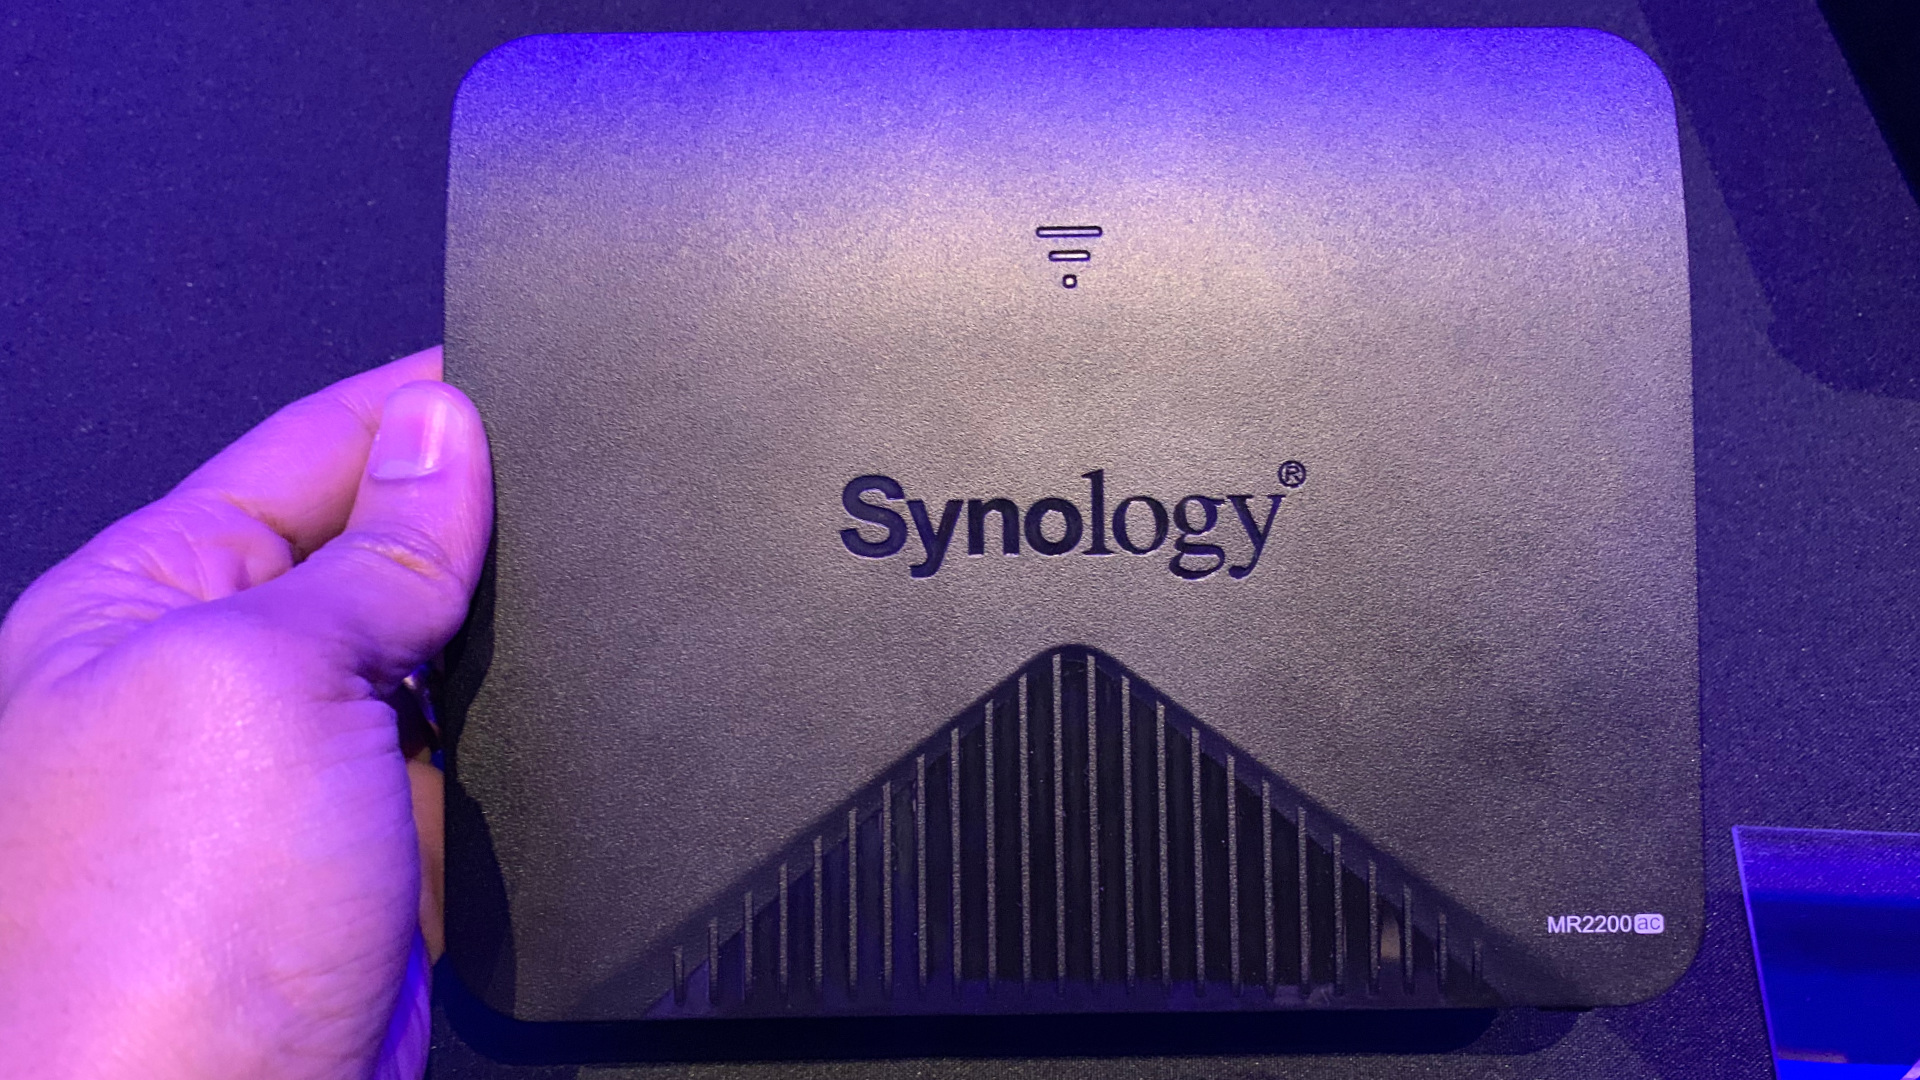 synology unveils new 140 mr2200ac mesh router with quad core cpu